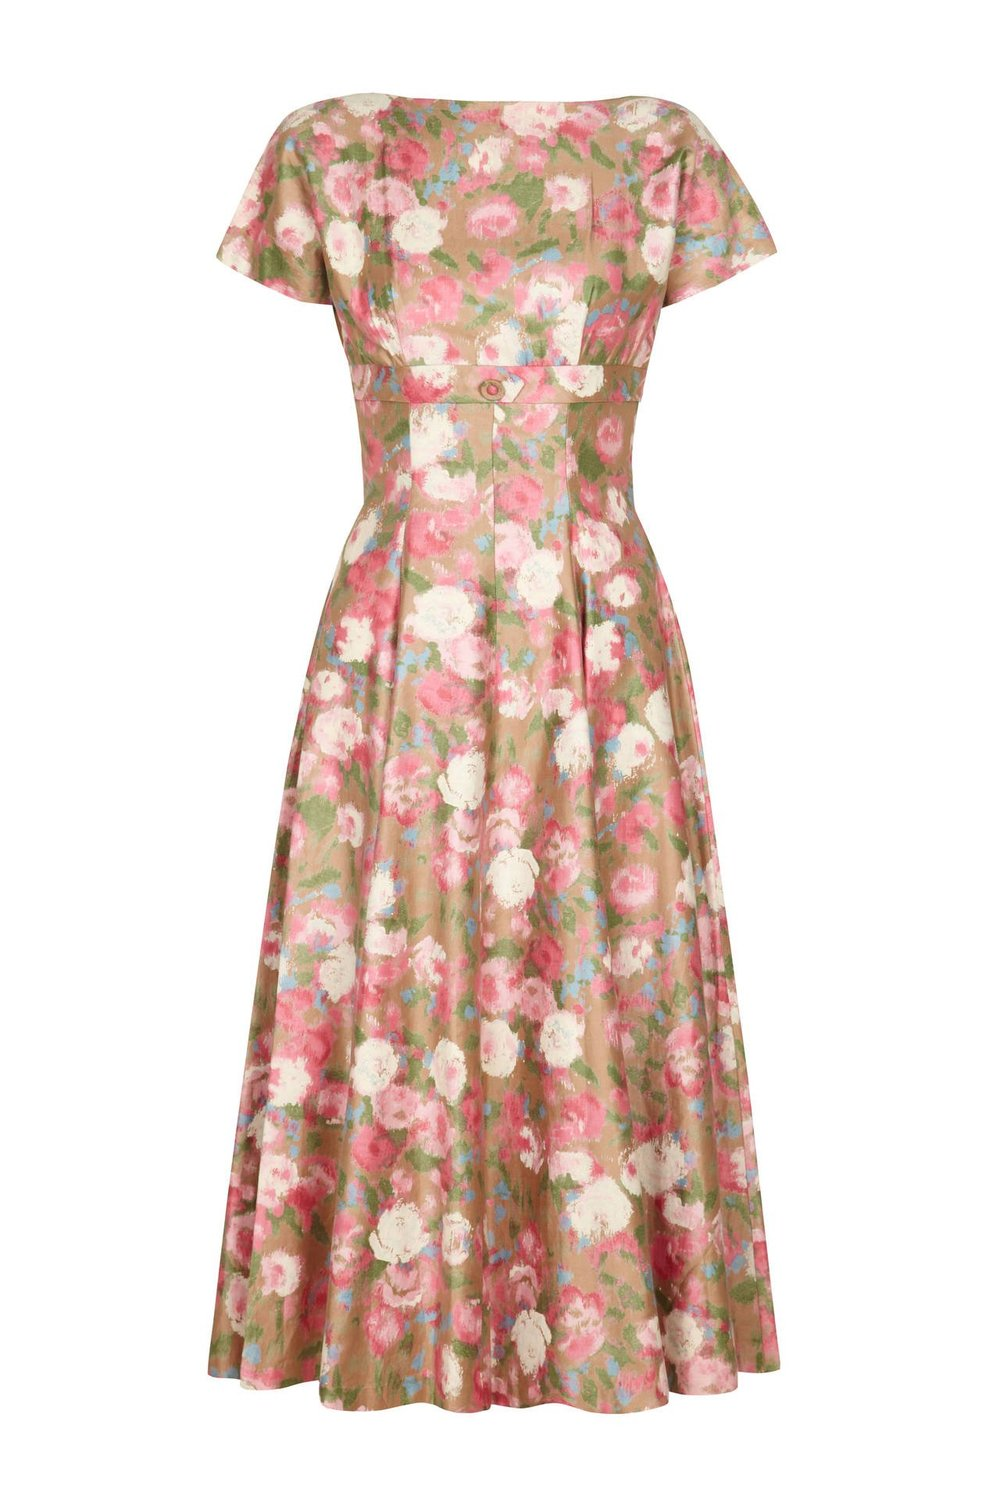 1950s Cotton Floral Dress via 1st Dibs